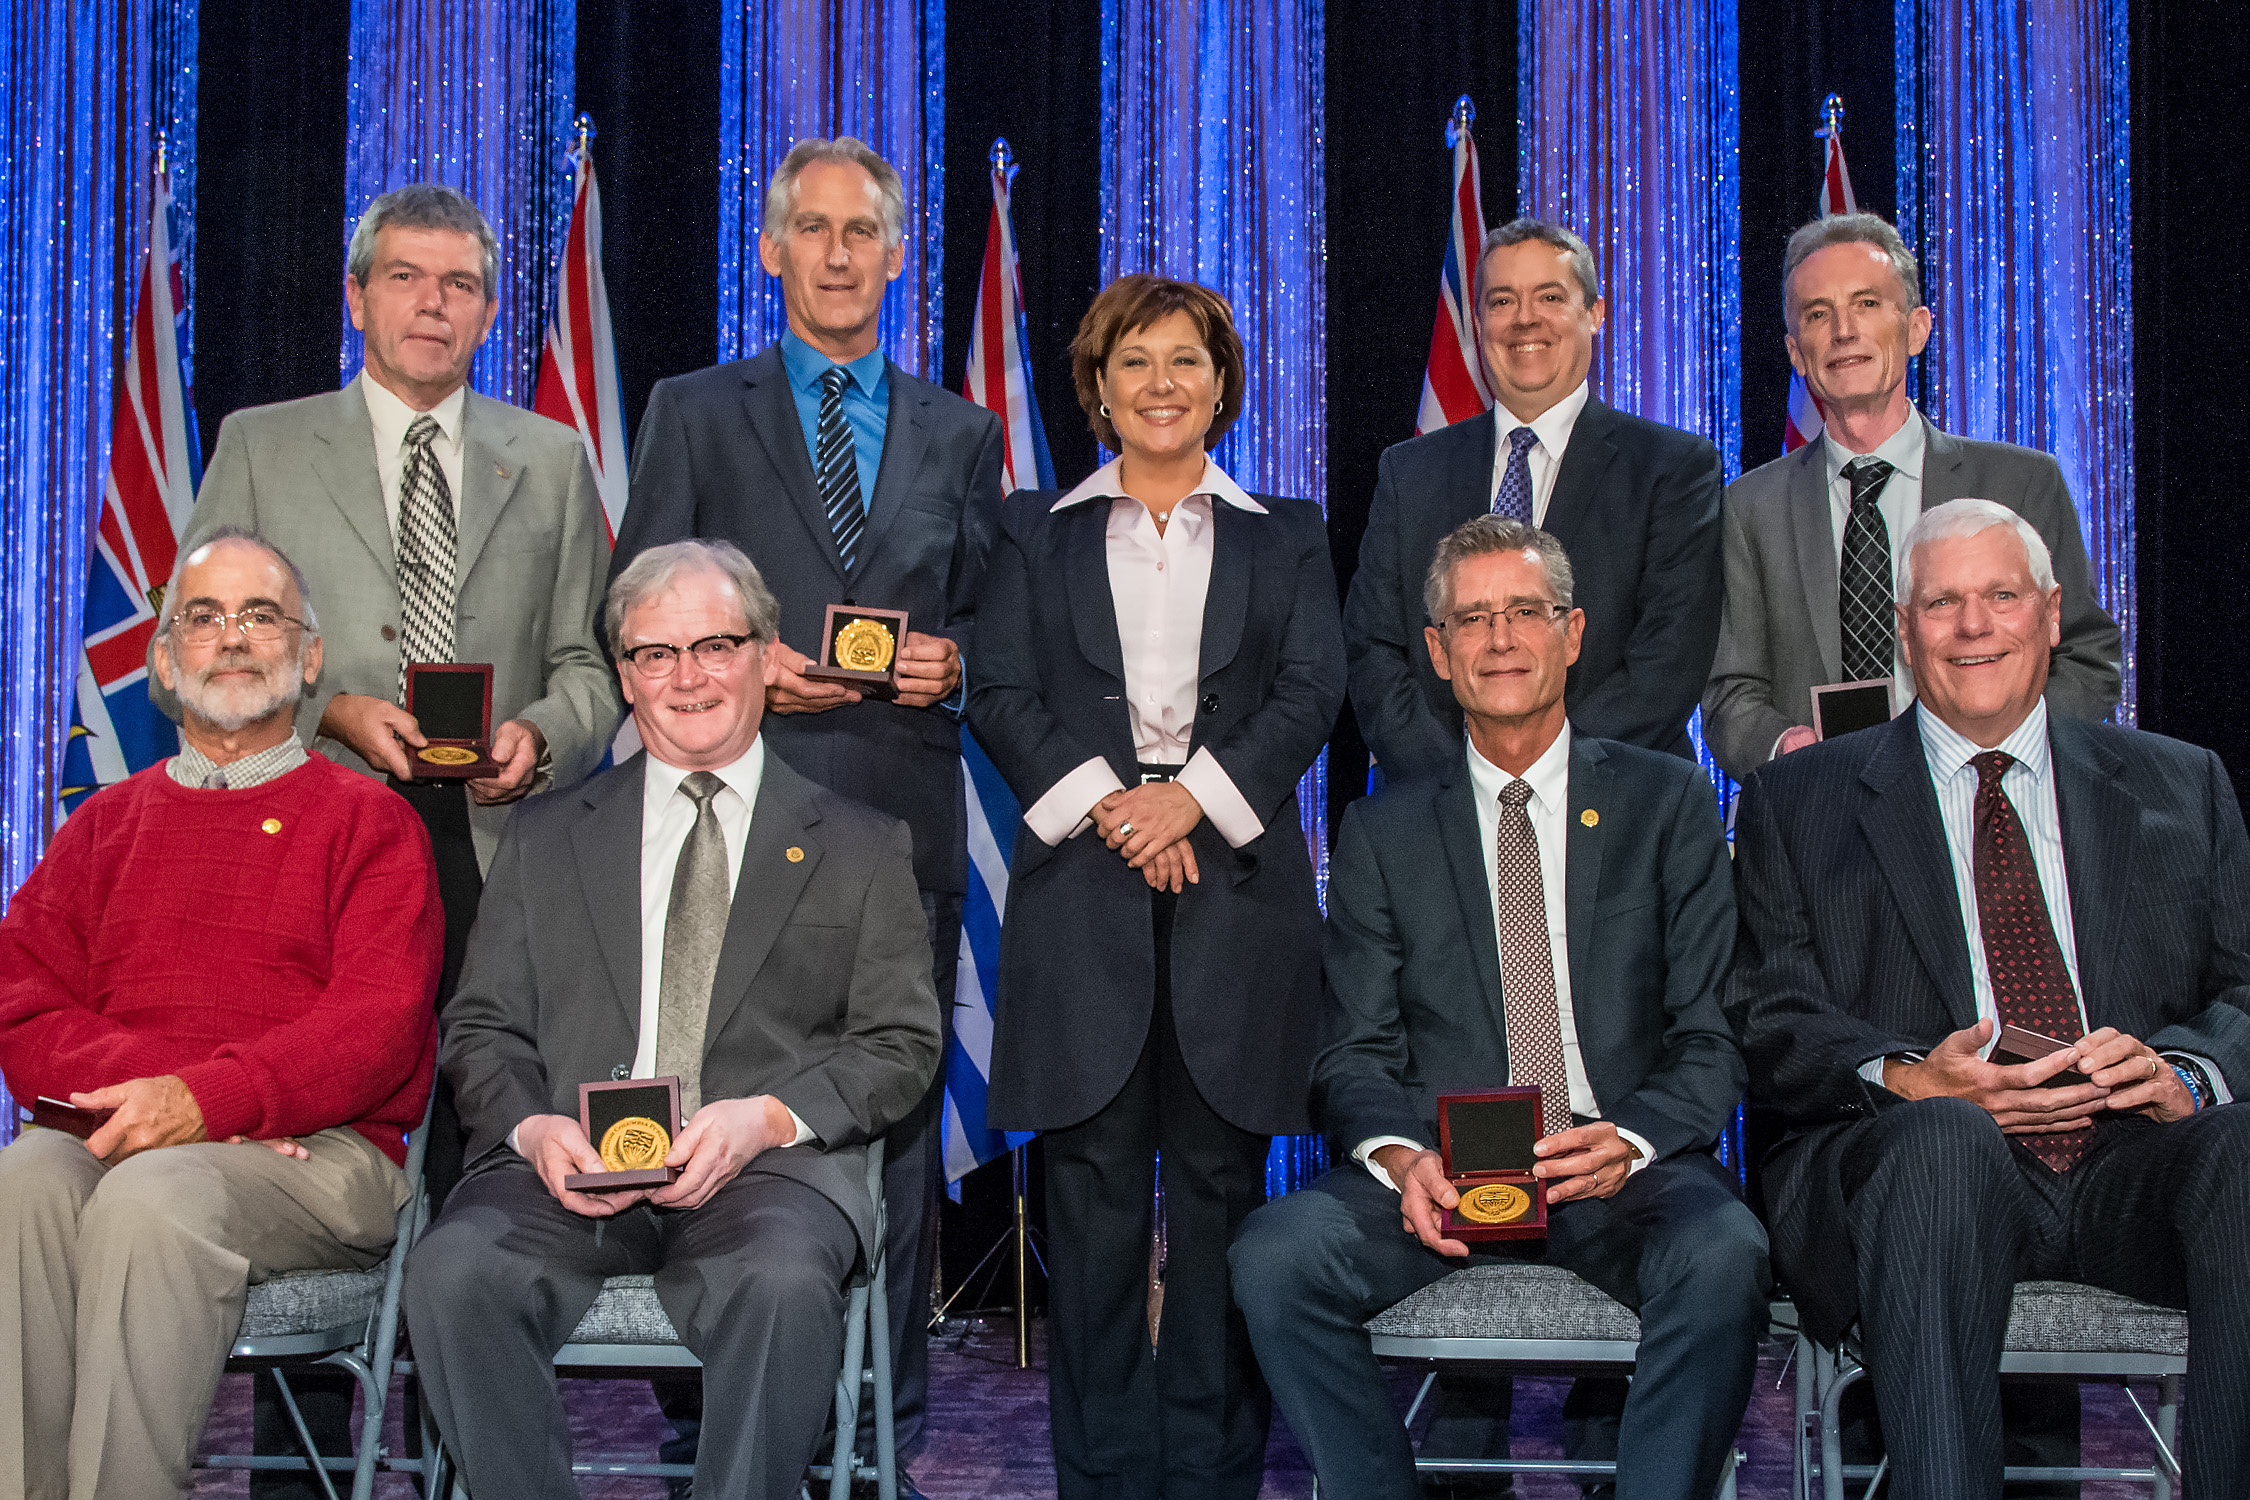 In 2014, Premier Christy Clark celebrated the exceptional accomplishments of British Columbia's public service employees and unveiled a new form of recognition, the BC Public Service Hall of Excellence, at the Premier's Annual Innovation and Excellence Awards ceremony.